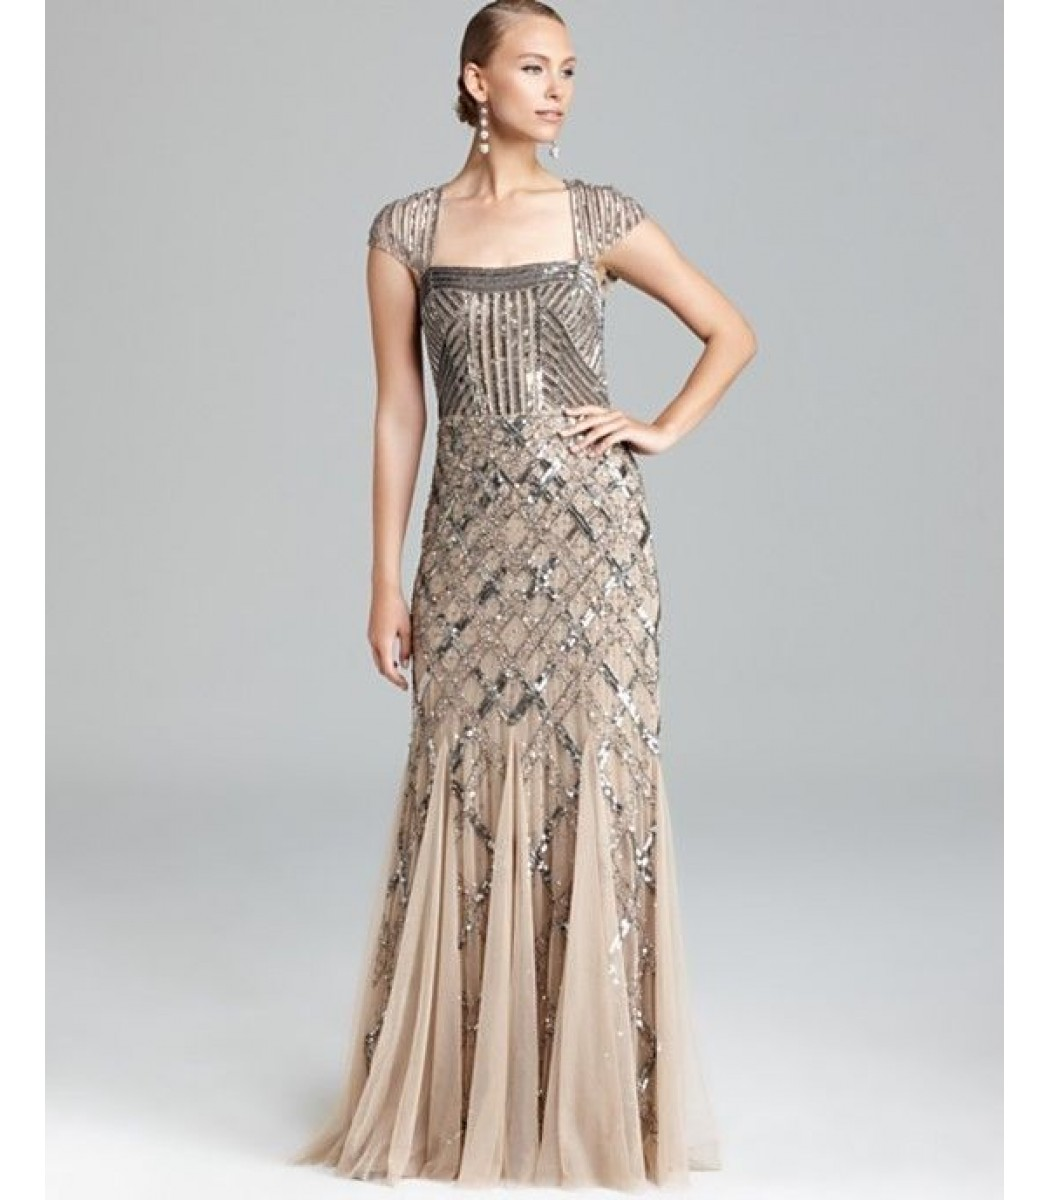 ADRIANNA PAPELL 092875460 Nude Formal Evening Gown Dress Sz 4 6 8 10 ...